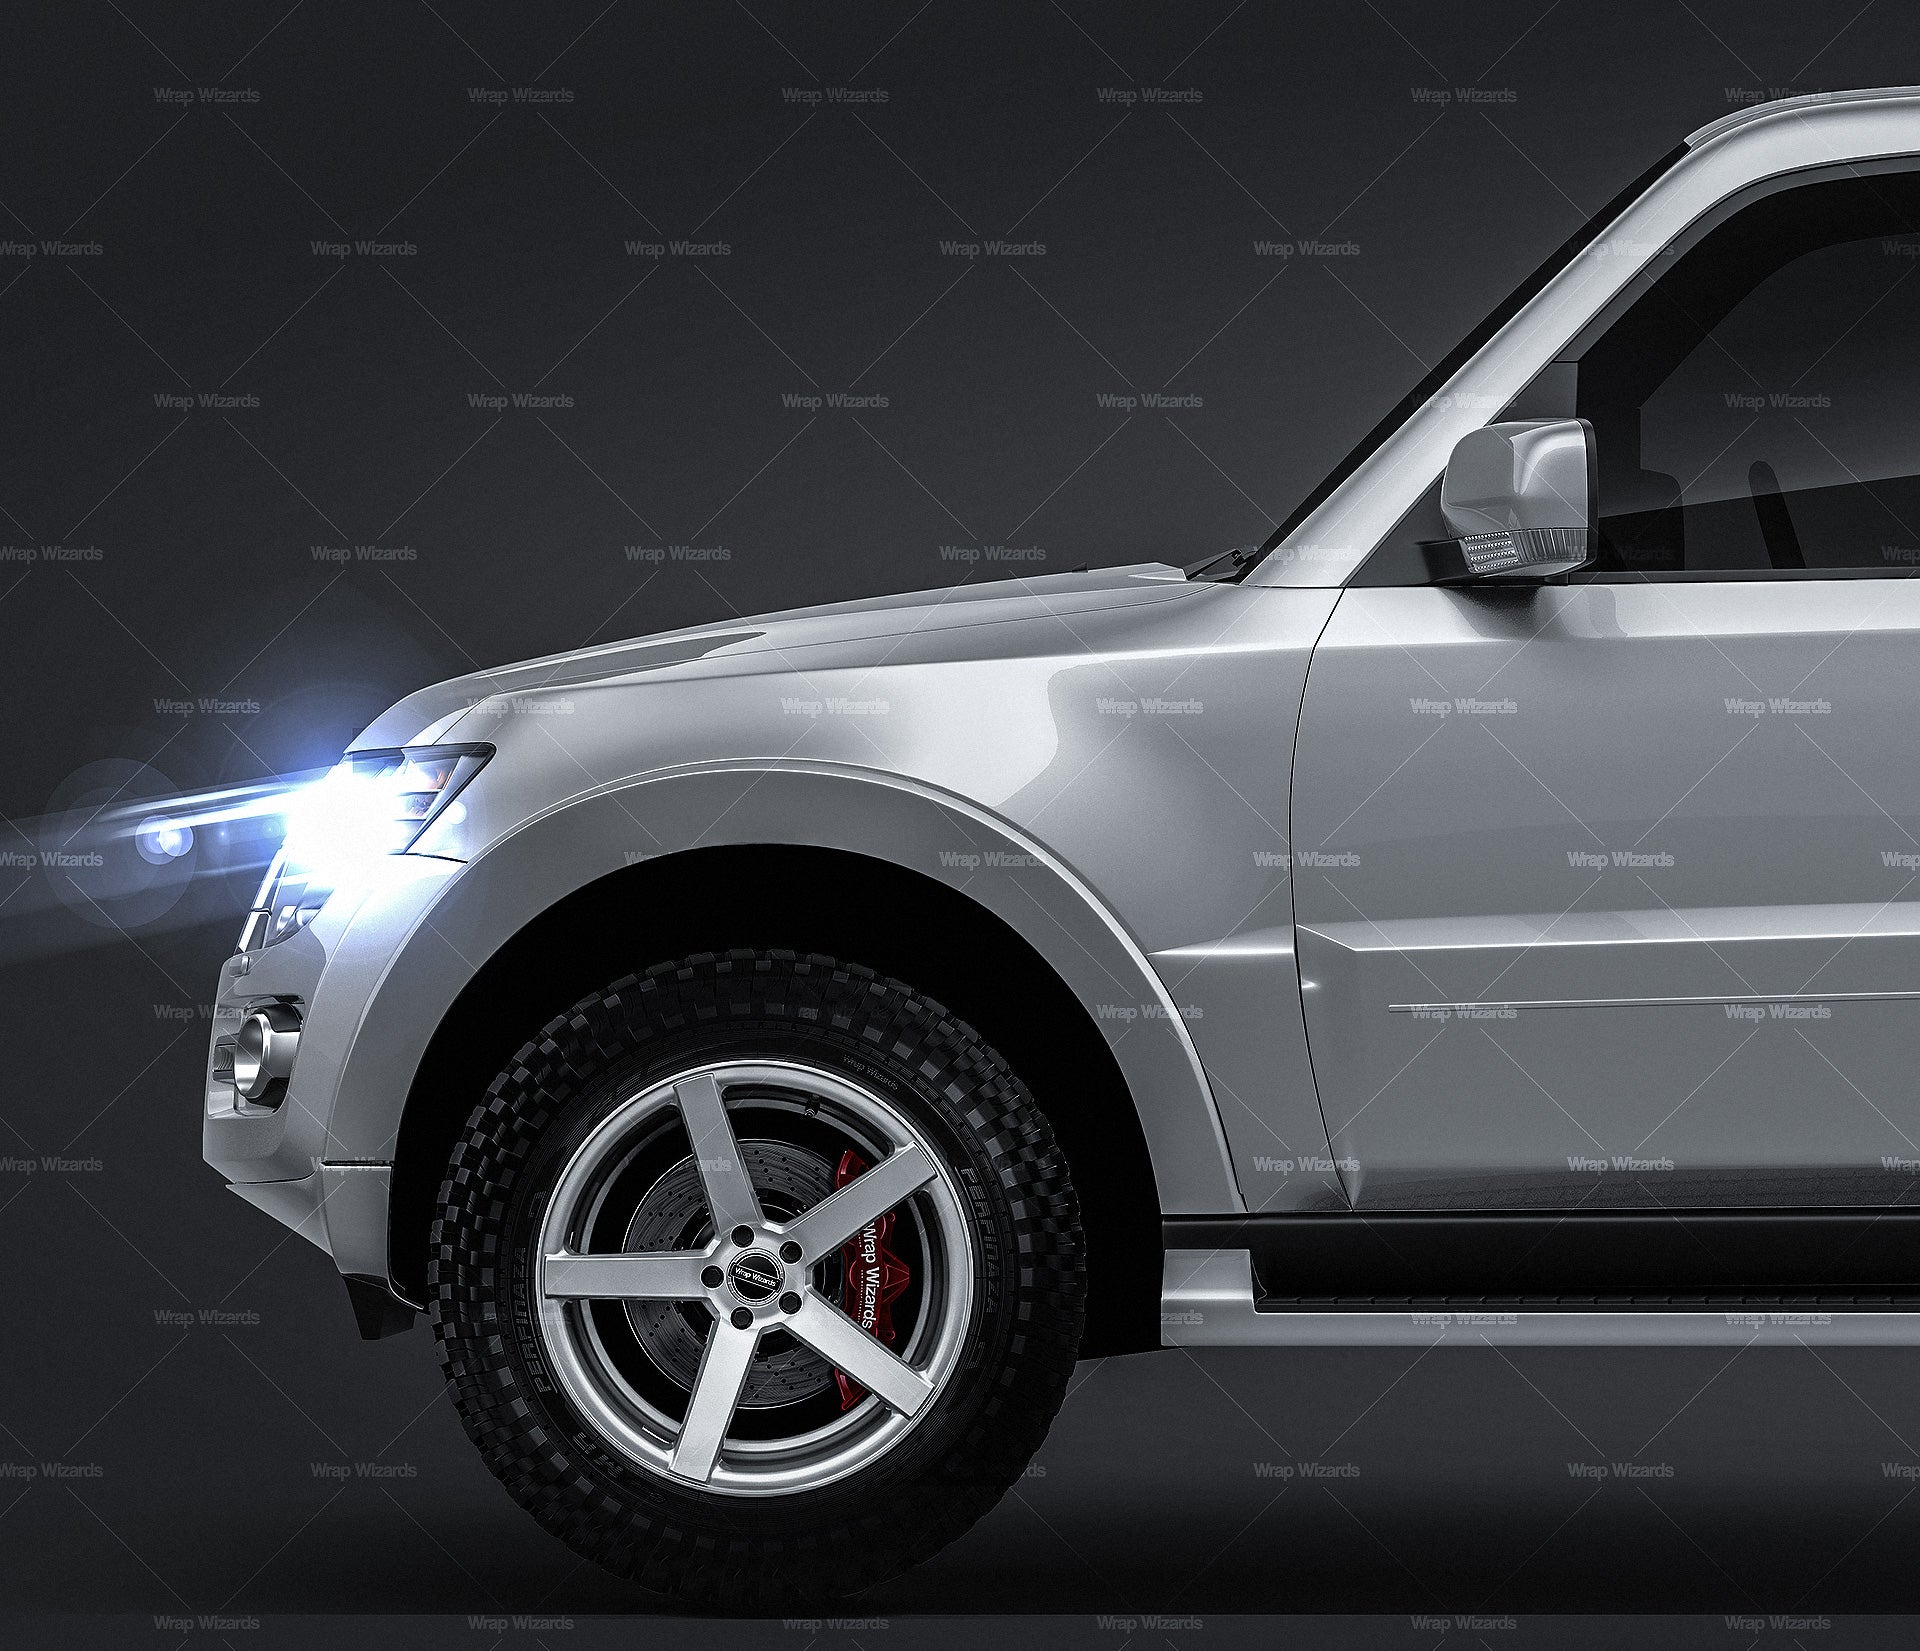 Mitsubishi Pajero Montero 2015 glossy finish - all sides Car Mockup Template.psd